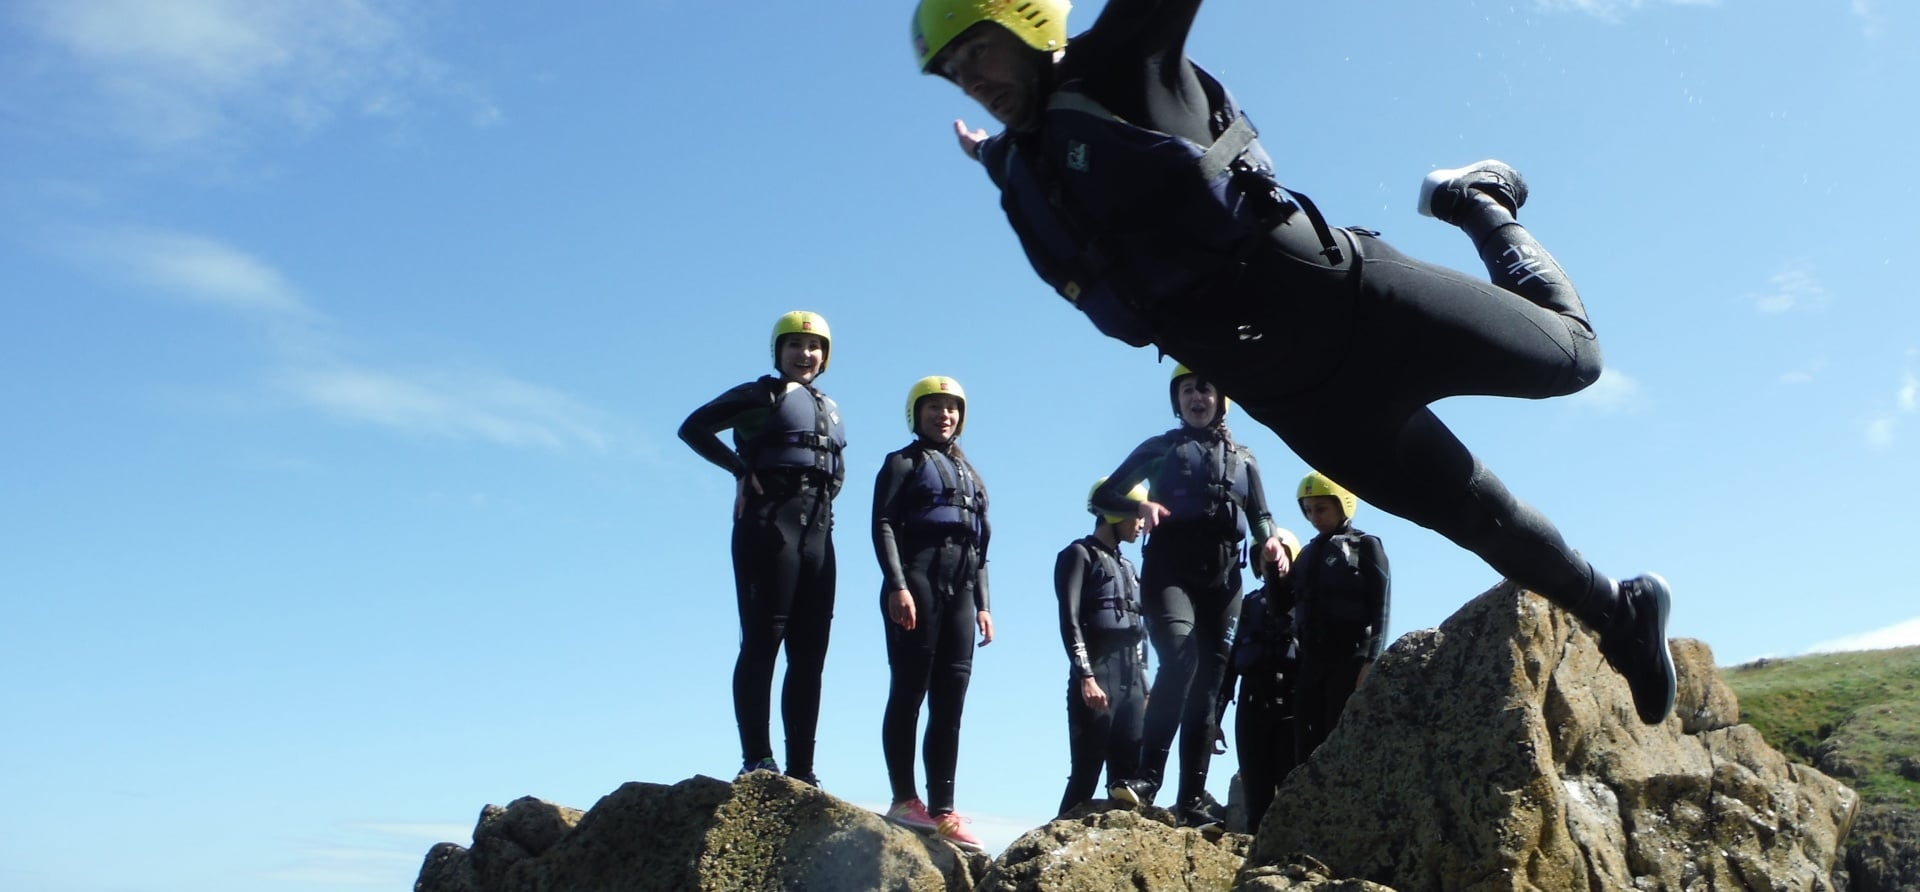 Coasteering Adventure In Pembrokeshire - Half Day